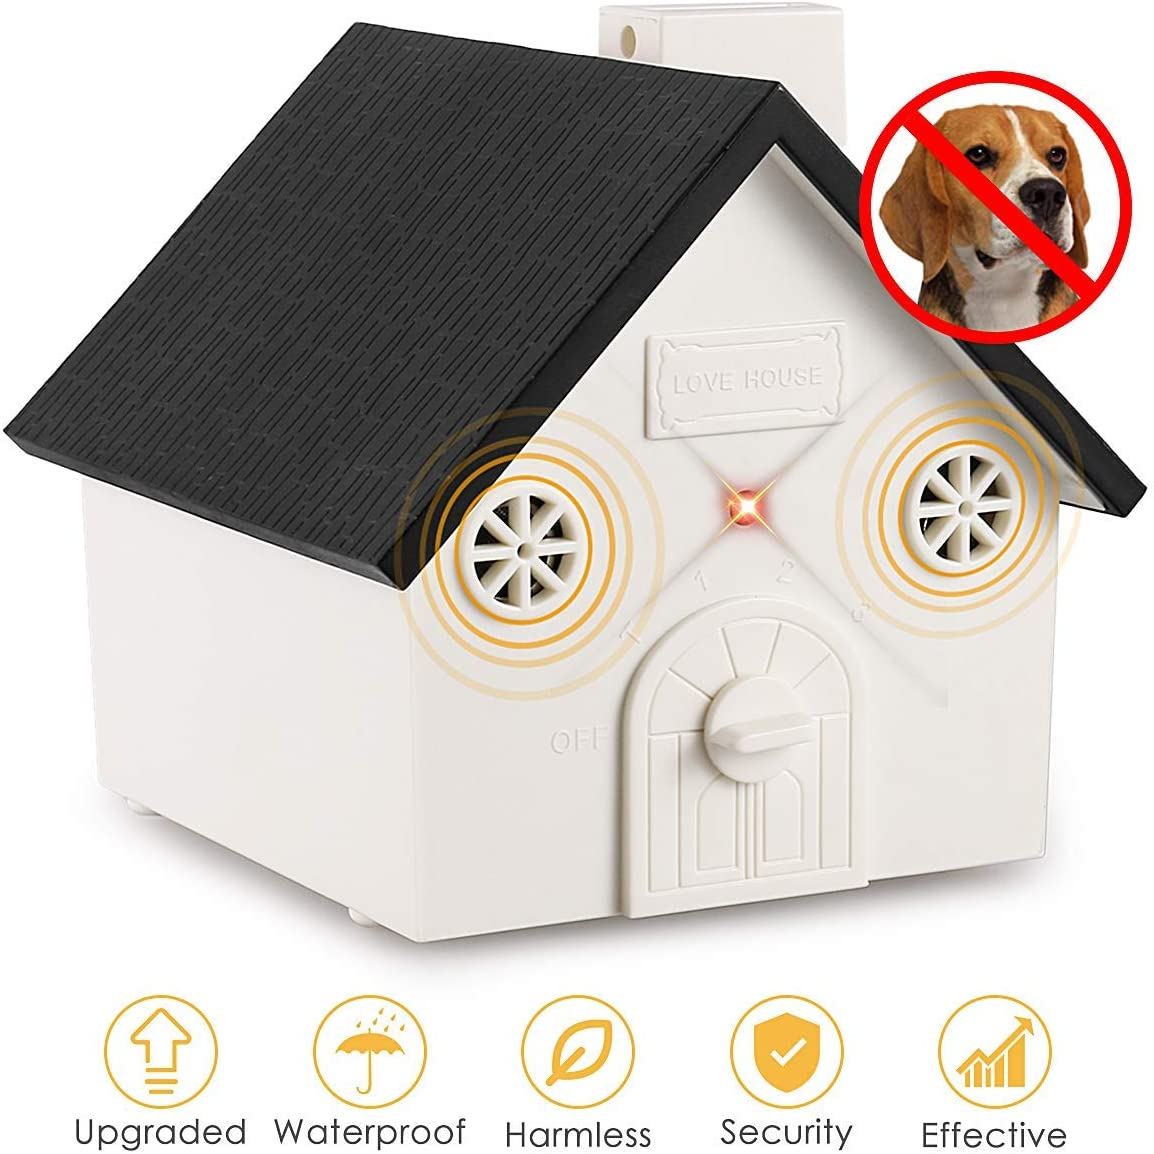 Humutan Anti Barking Device, 2019 New Bark Box Outdoor Dog Repellent Device with Adjustable Ultrasonic Level Control Safe for Small Medium Large Dogs, Sonic Bark Deterrents, Bark Control Device